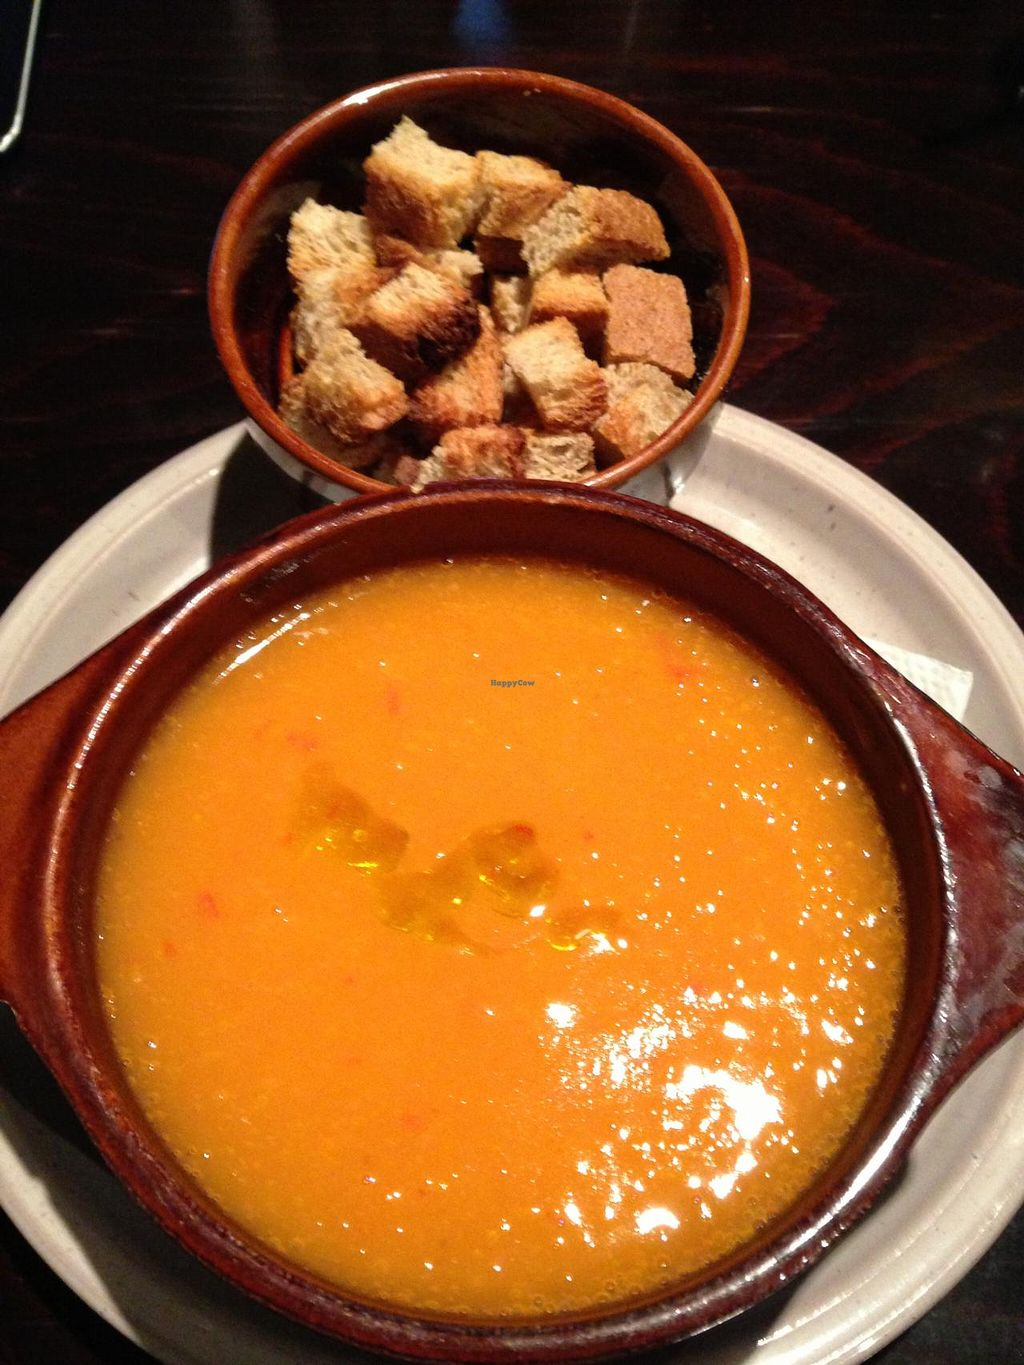 """Photo of CLOSED: BIOFresh 1  by <a href=""""/members/profile/veggieriga"""">veggieriga</a> <br/>BioFresh carrot soup with homemade croutons <br/> January 1, 2014  - <a href='/contact/abuse/image/34247/61458'>Report</a>"""